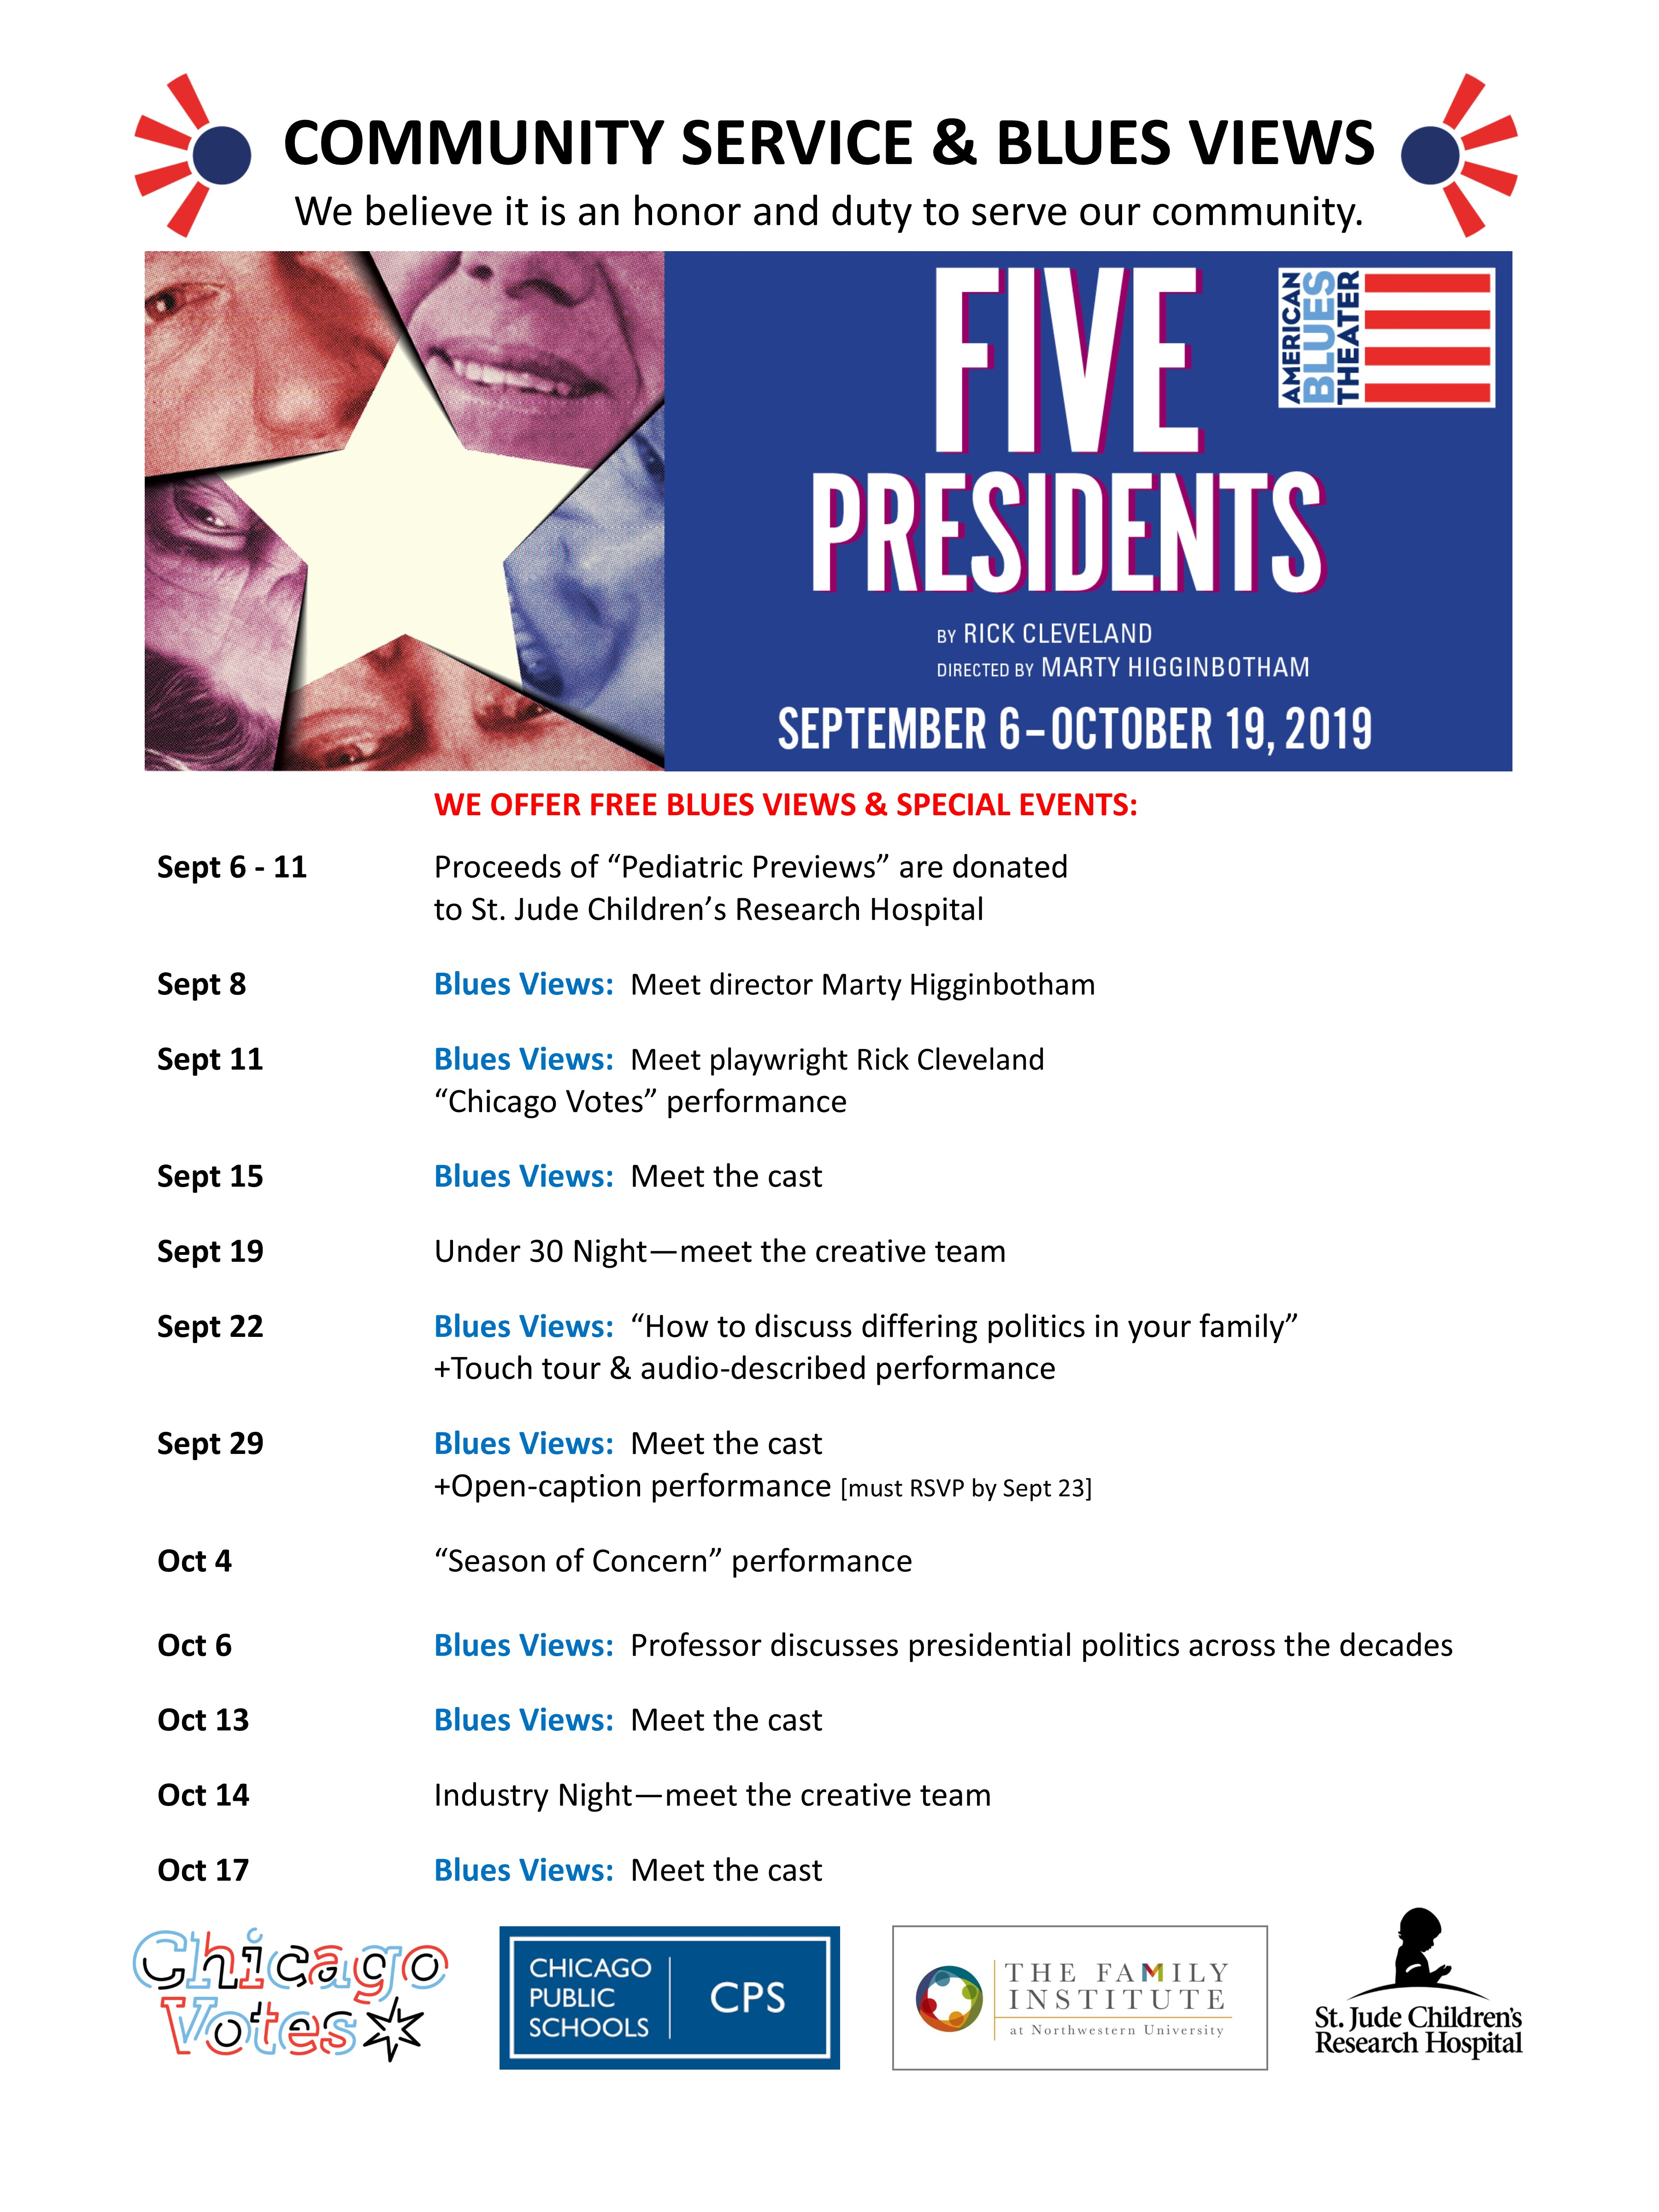 Community Service for FIVE PRESIDENTS - American Blues Theater